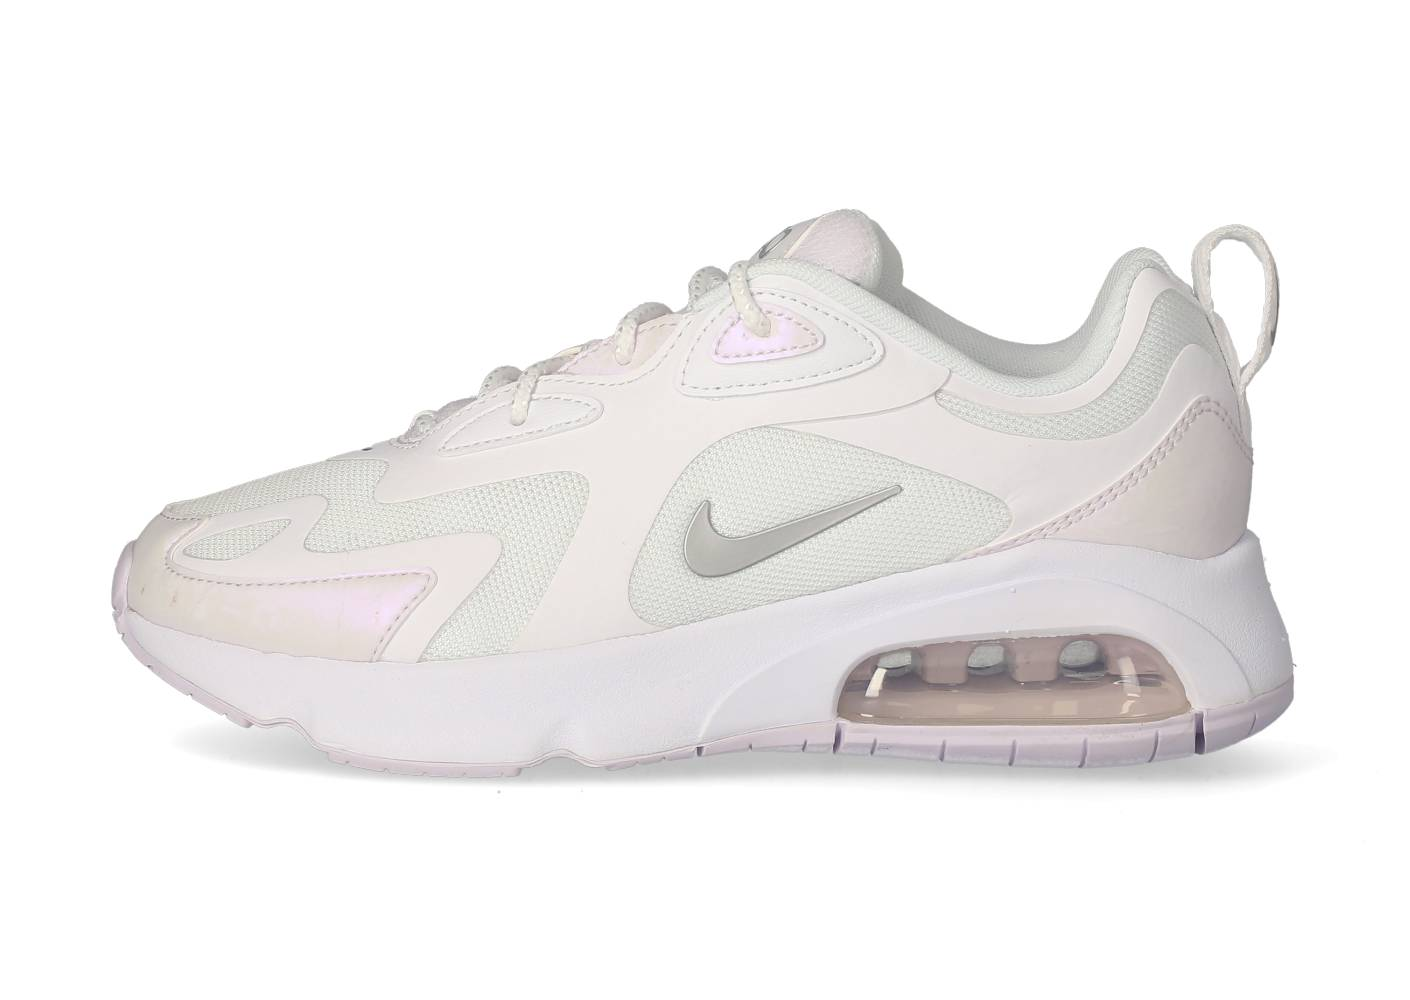 Nike Running Nike Air Max 200 Blanche Et Argent Femme 38